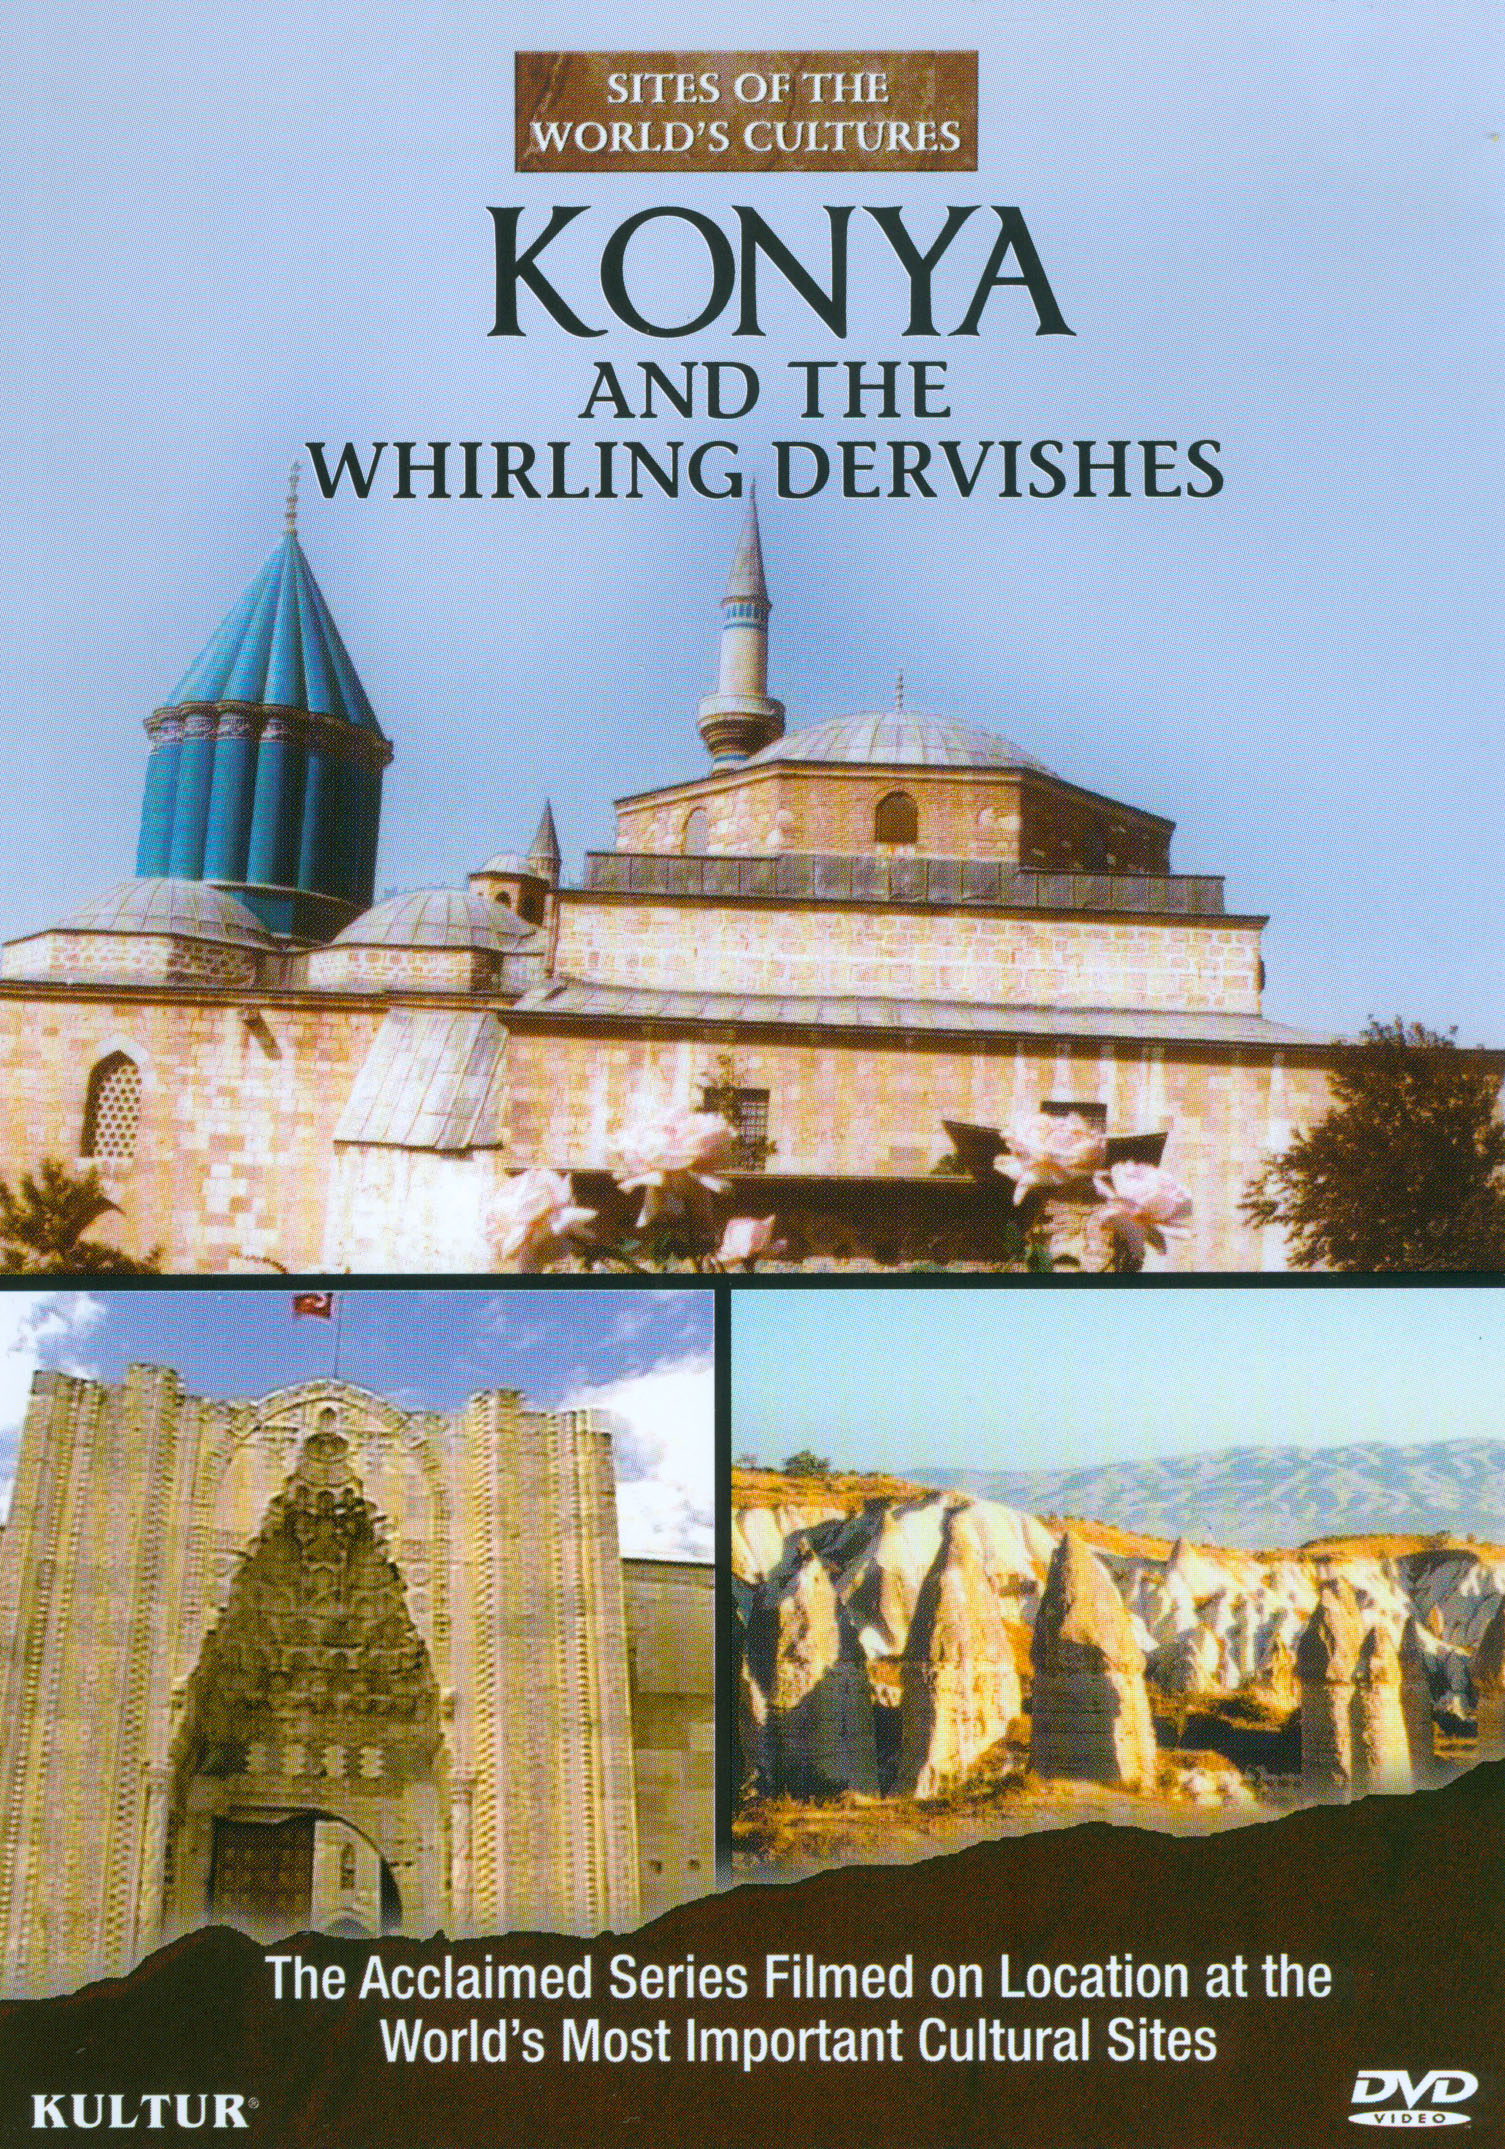 Sites of the World's Cultures: Konya and the Whirling Dervishes